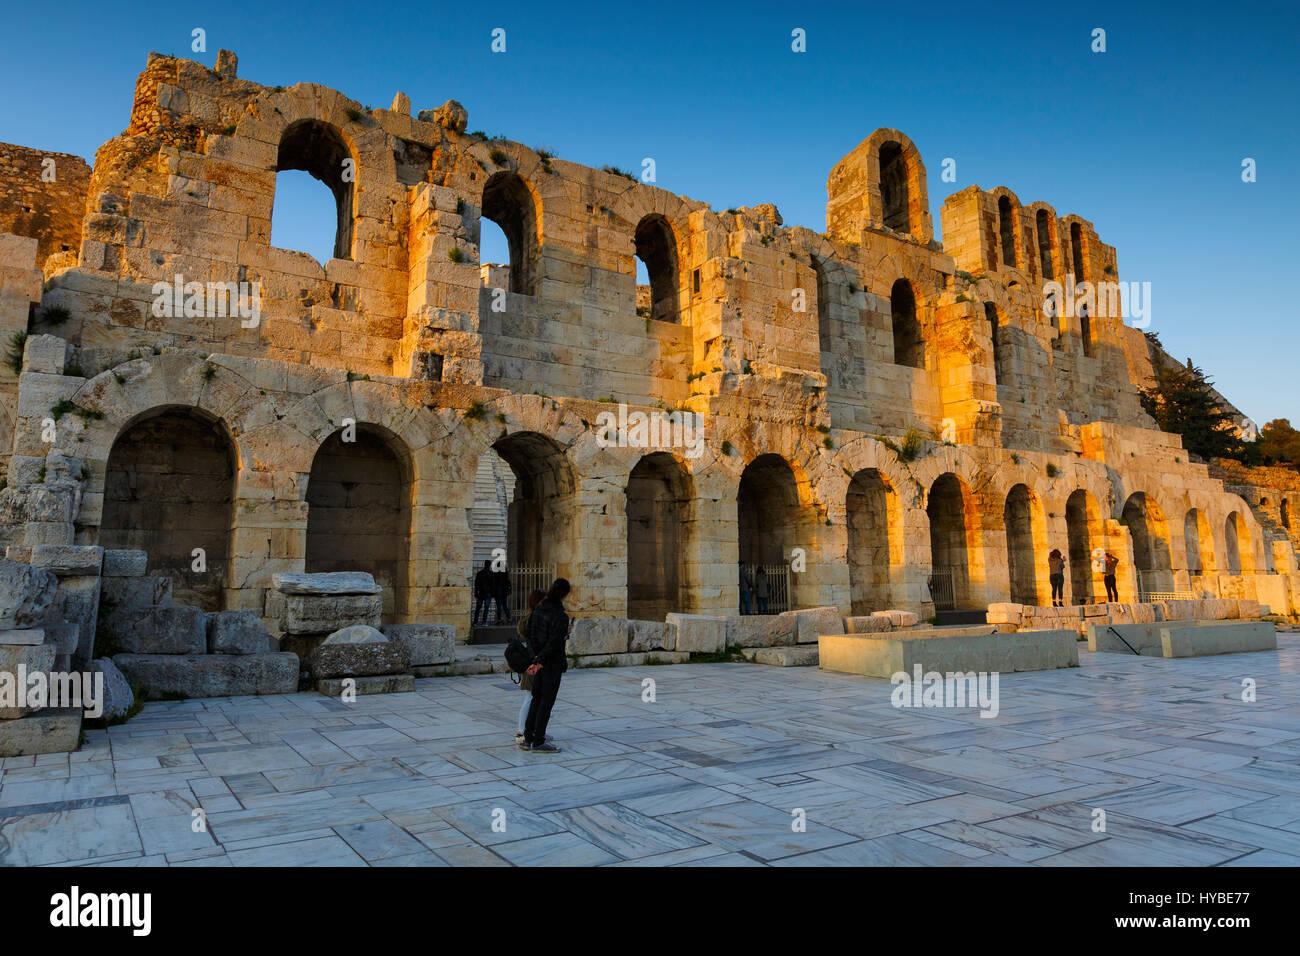 Remains of Odeon in the old town of Athens, Greece. - Stock Image